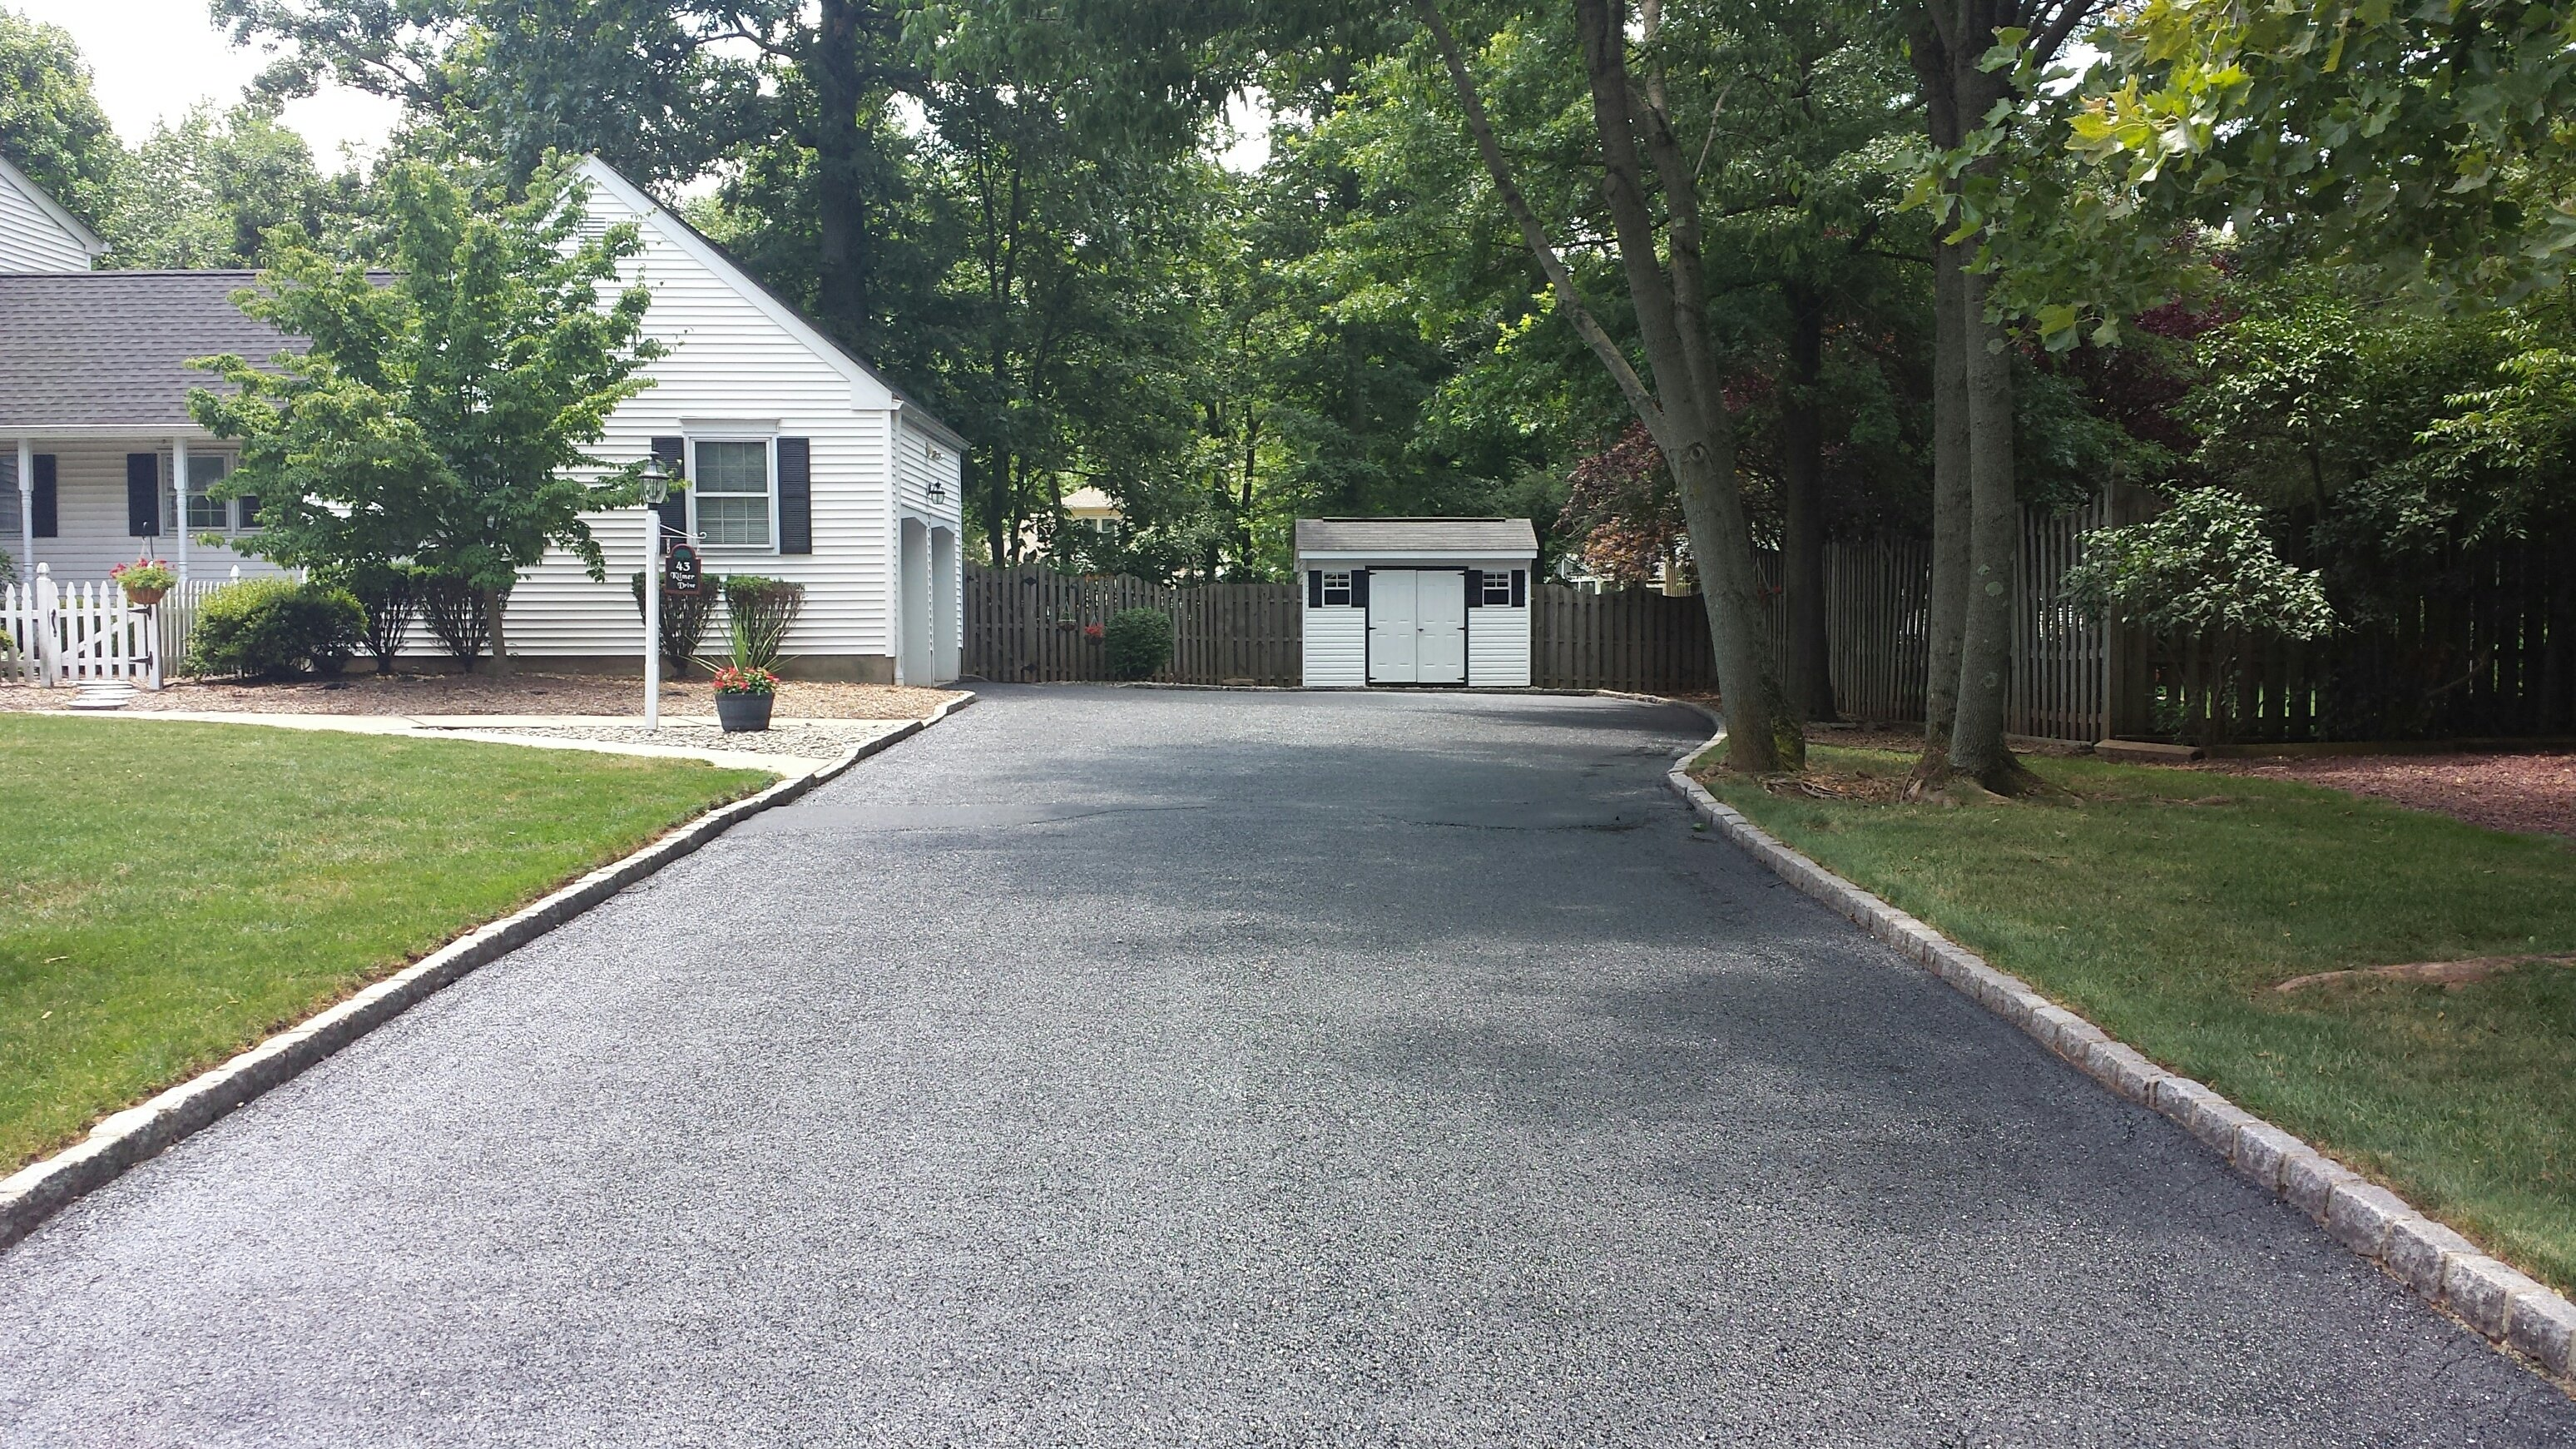 2019 Asphalt Paving Costs Install Resurface Replace